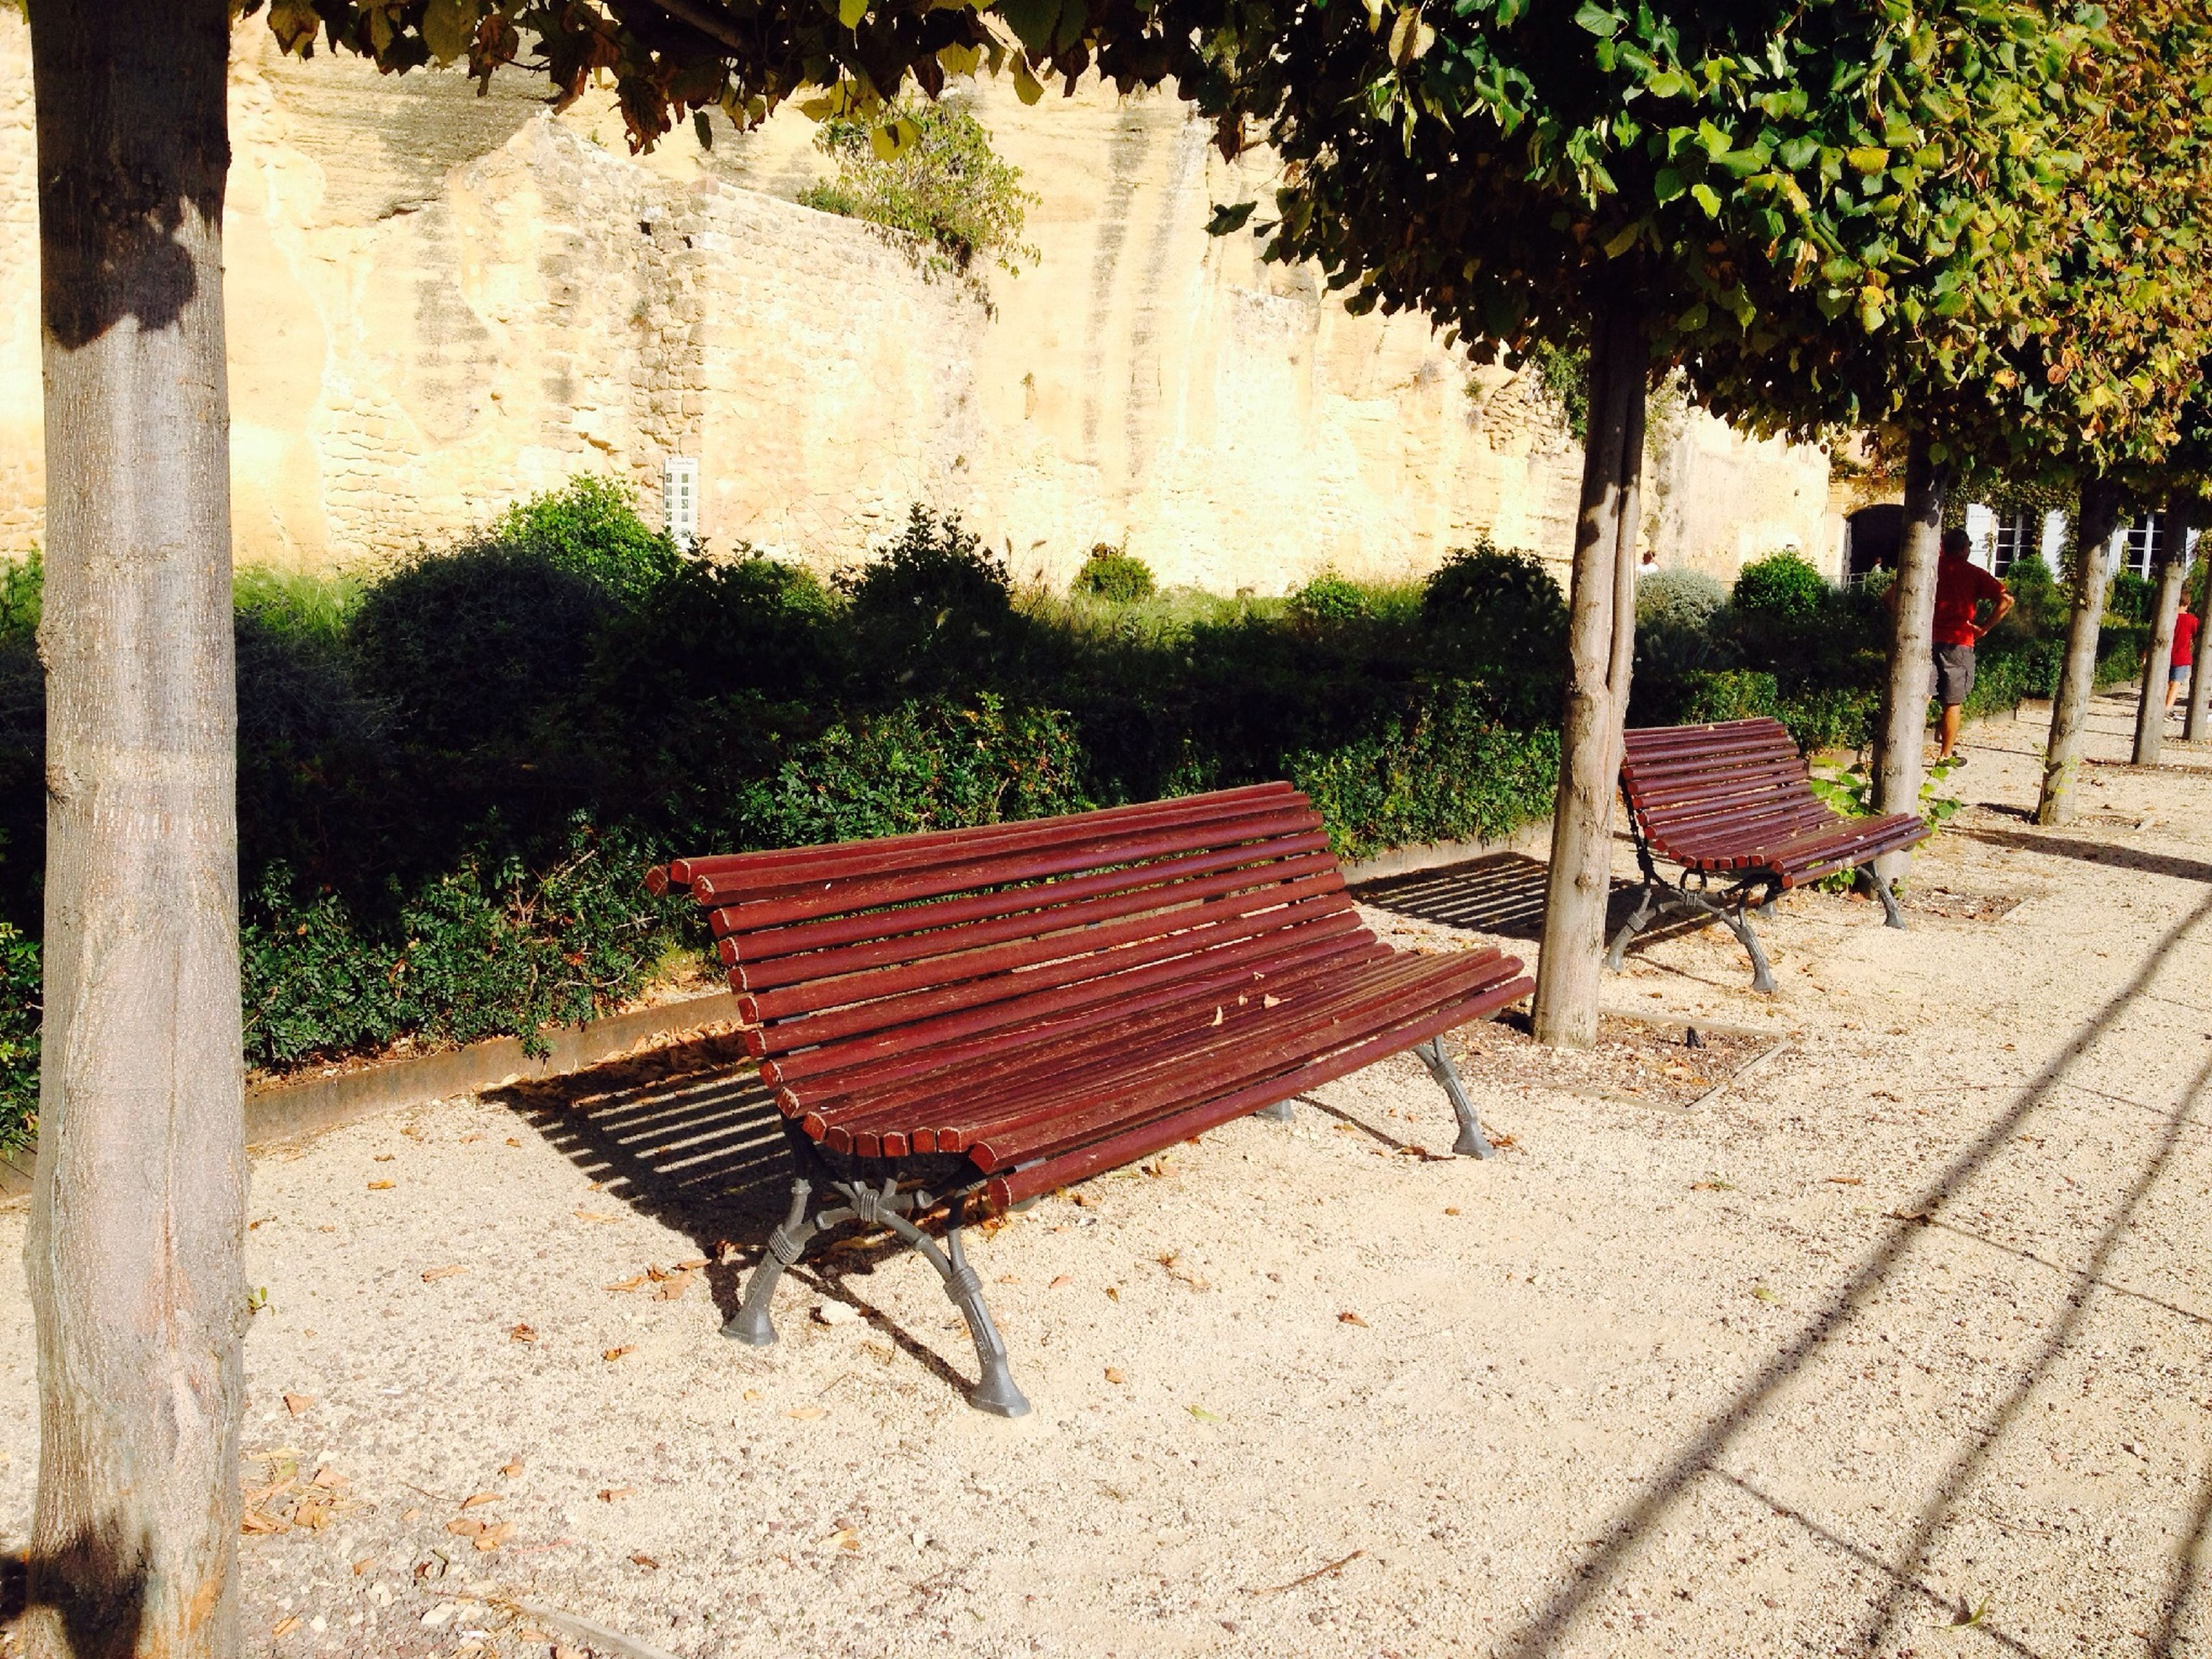 chair, bench, absence, empty, seat, park bench, wood - material, sunlight, tree, relaxation, park - man made space, day, shadow, outdoors, no people, furniture, front or back yard, sidewalk, nature, wooden